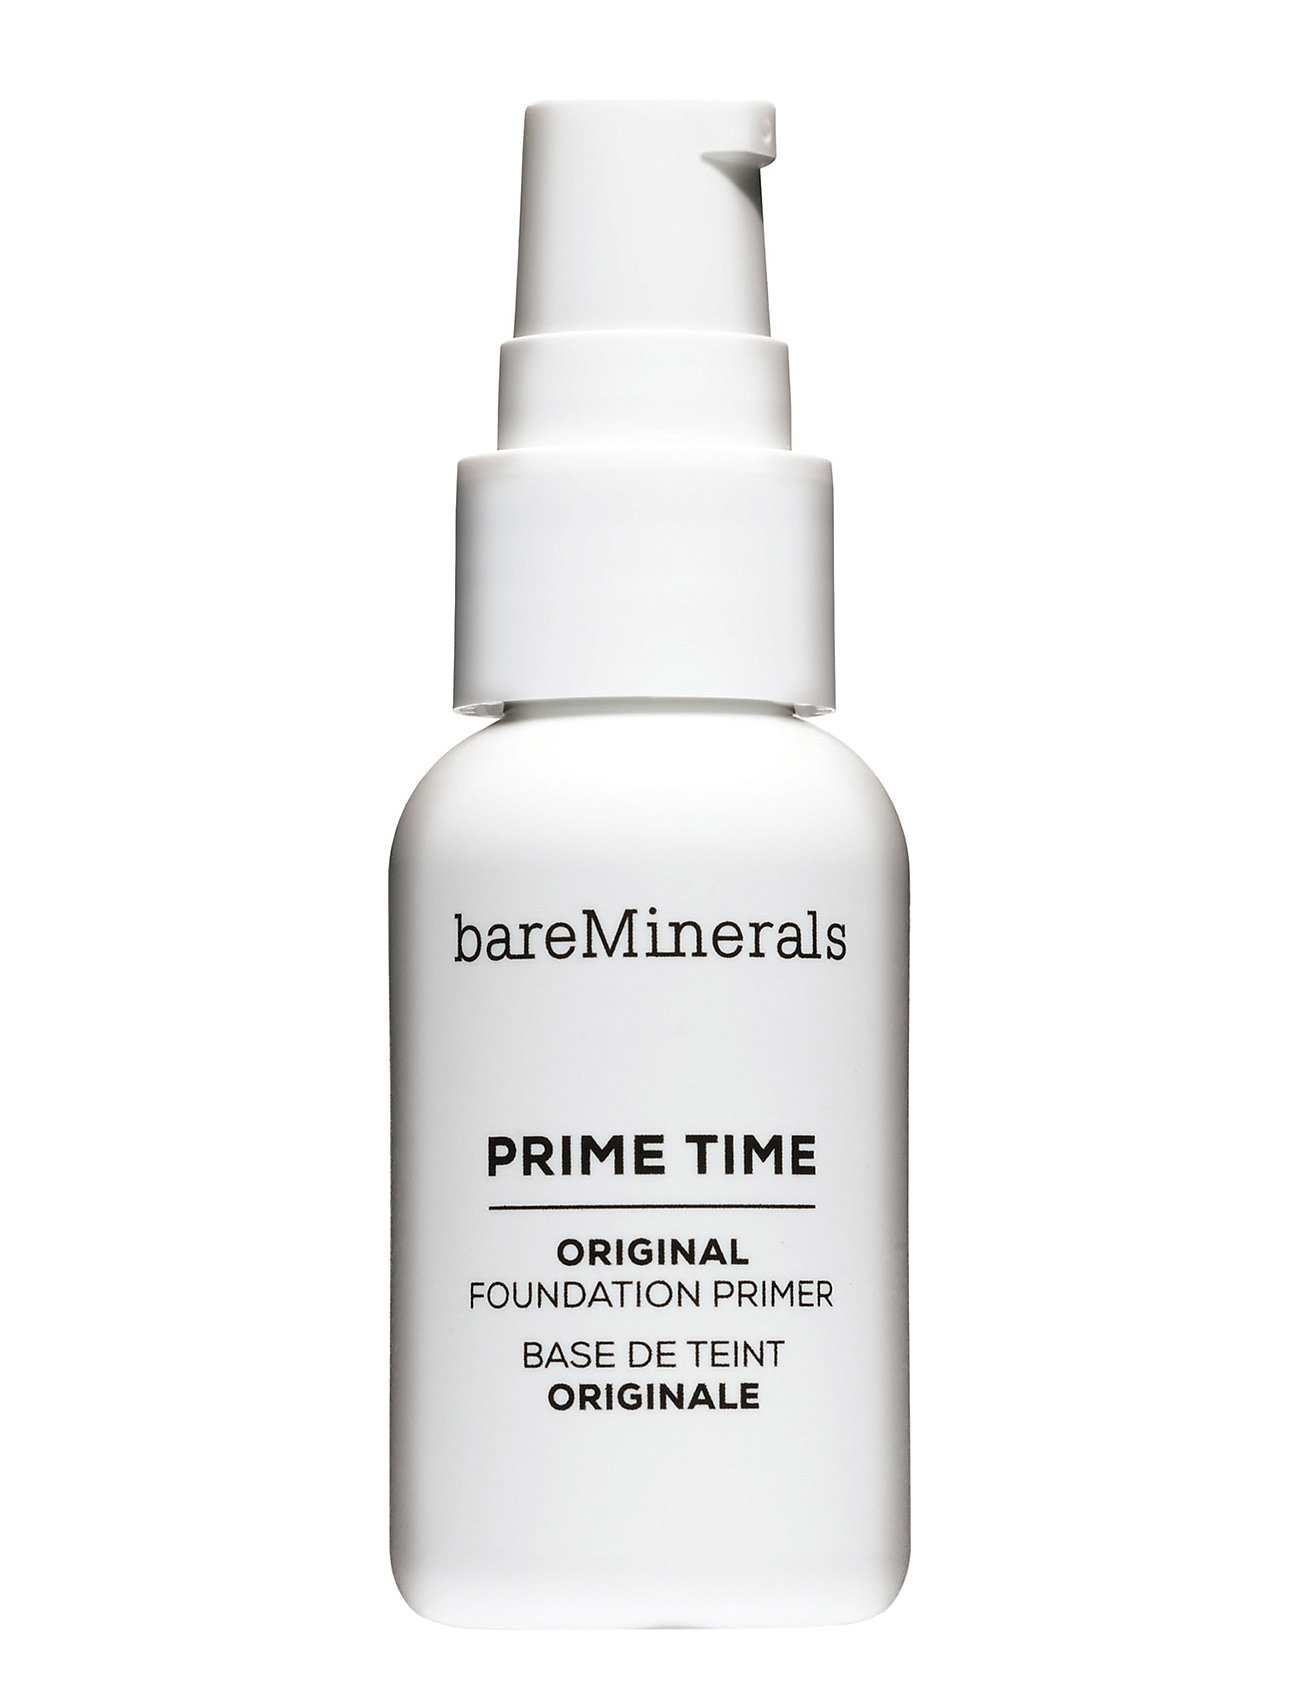 Image of Prime Time Original Foundation Primer Makeupprimer Makeup BareMinerals (3406150287)